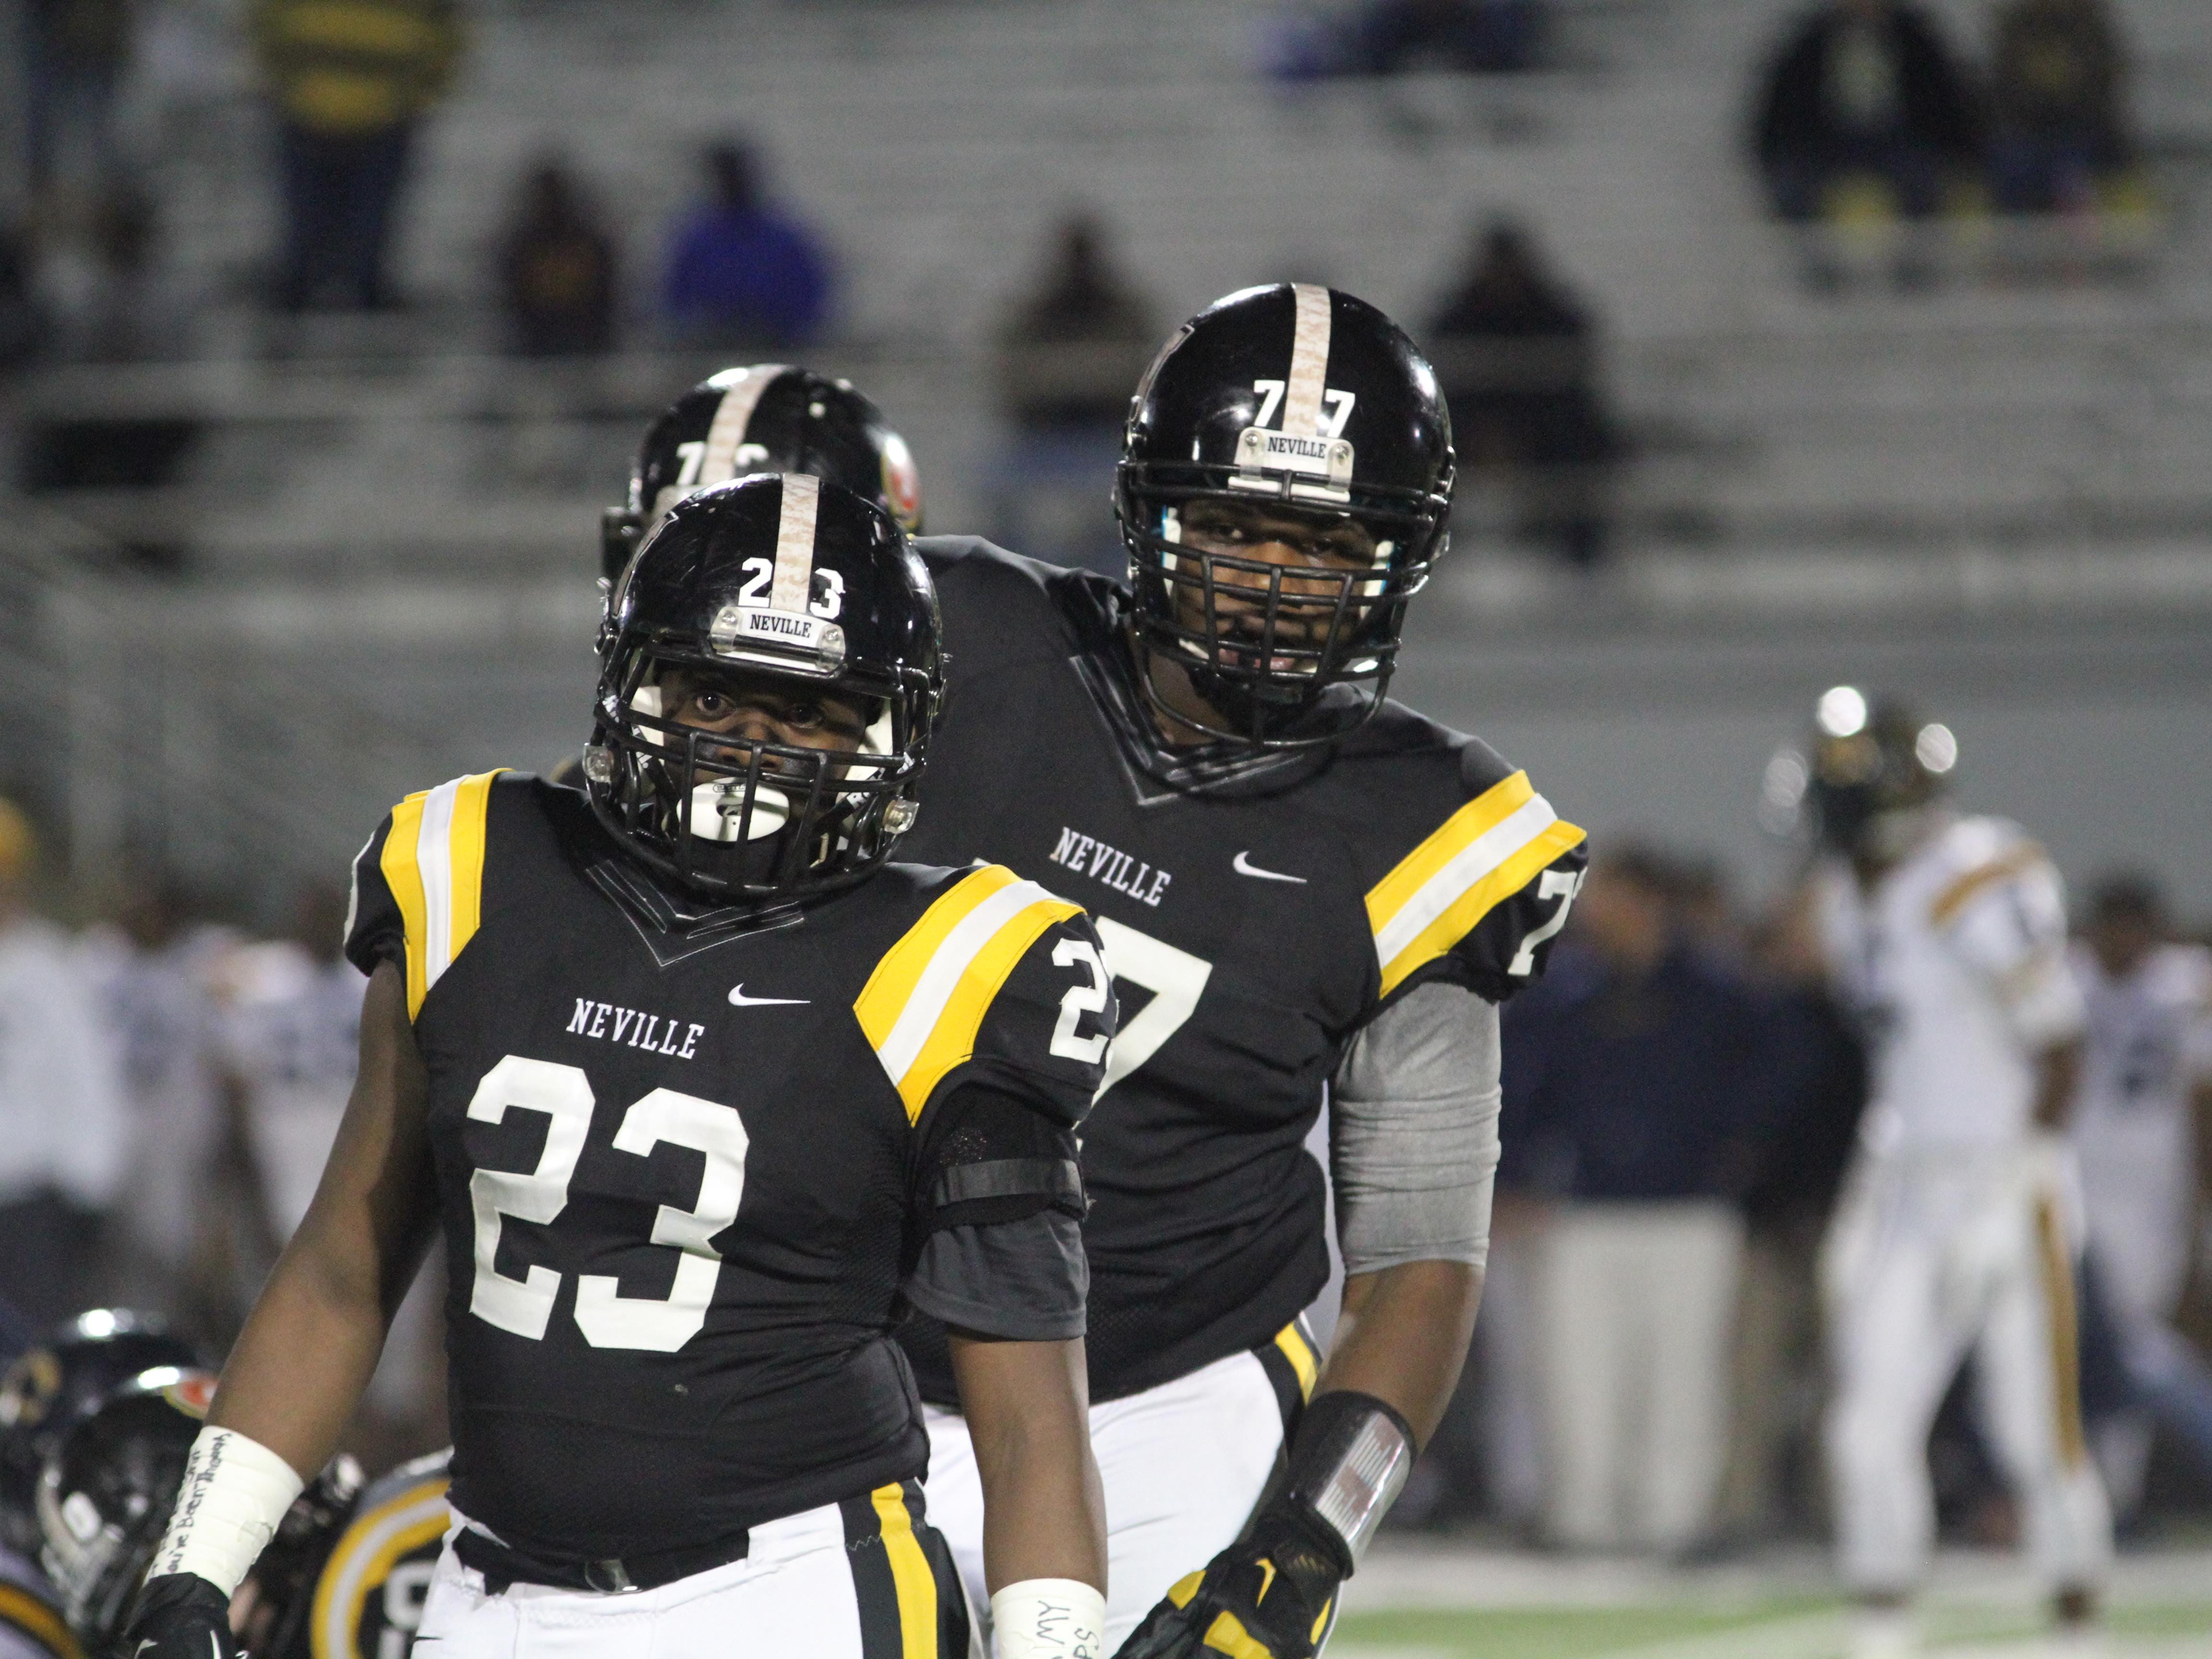 Neville's William Wooten (23) and Joctavis Phillips (77) await a play against the Carencro Bears on Friday night in Monroe.